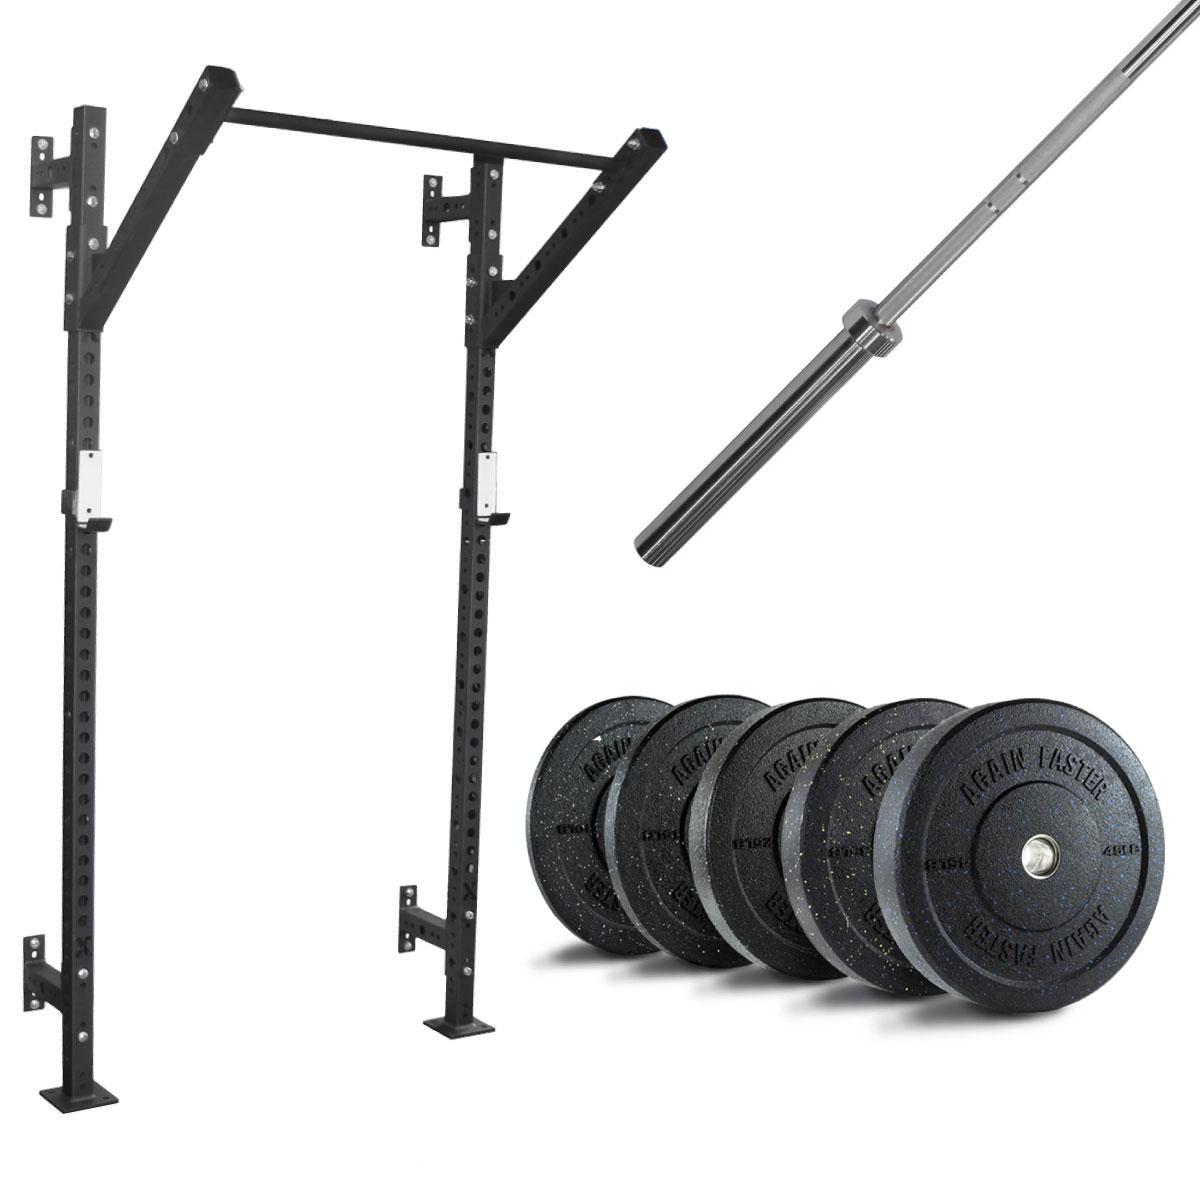 XSR Slim Rig + Barbell + 260lb Crumb Bumper Set - Currently Out of Stock